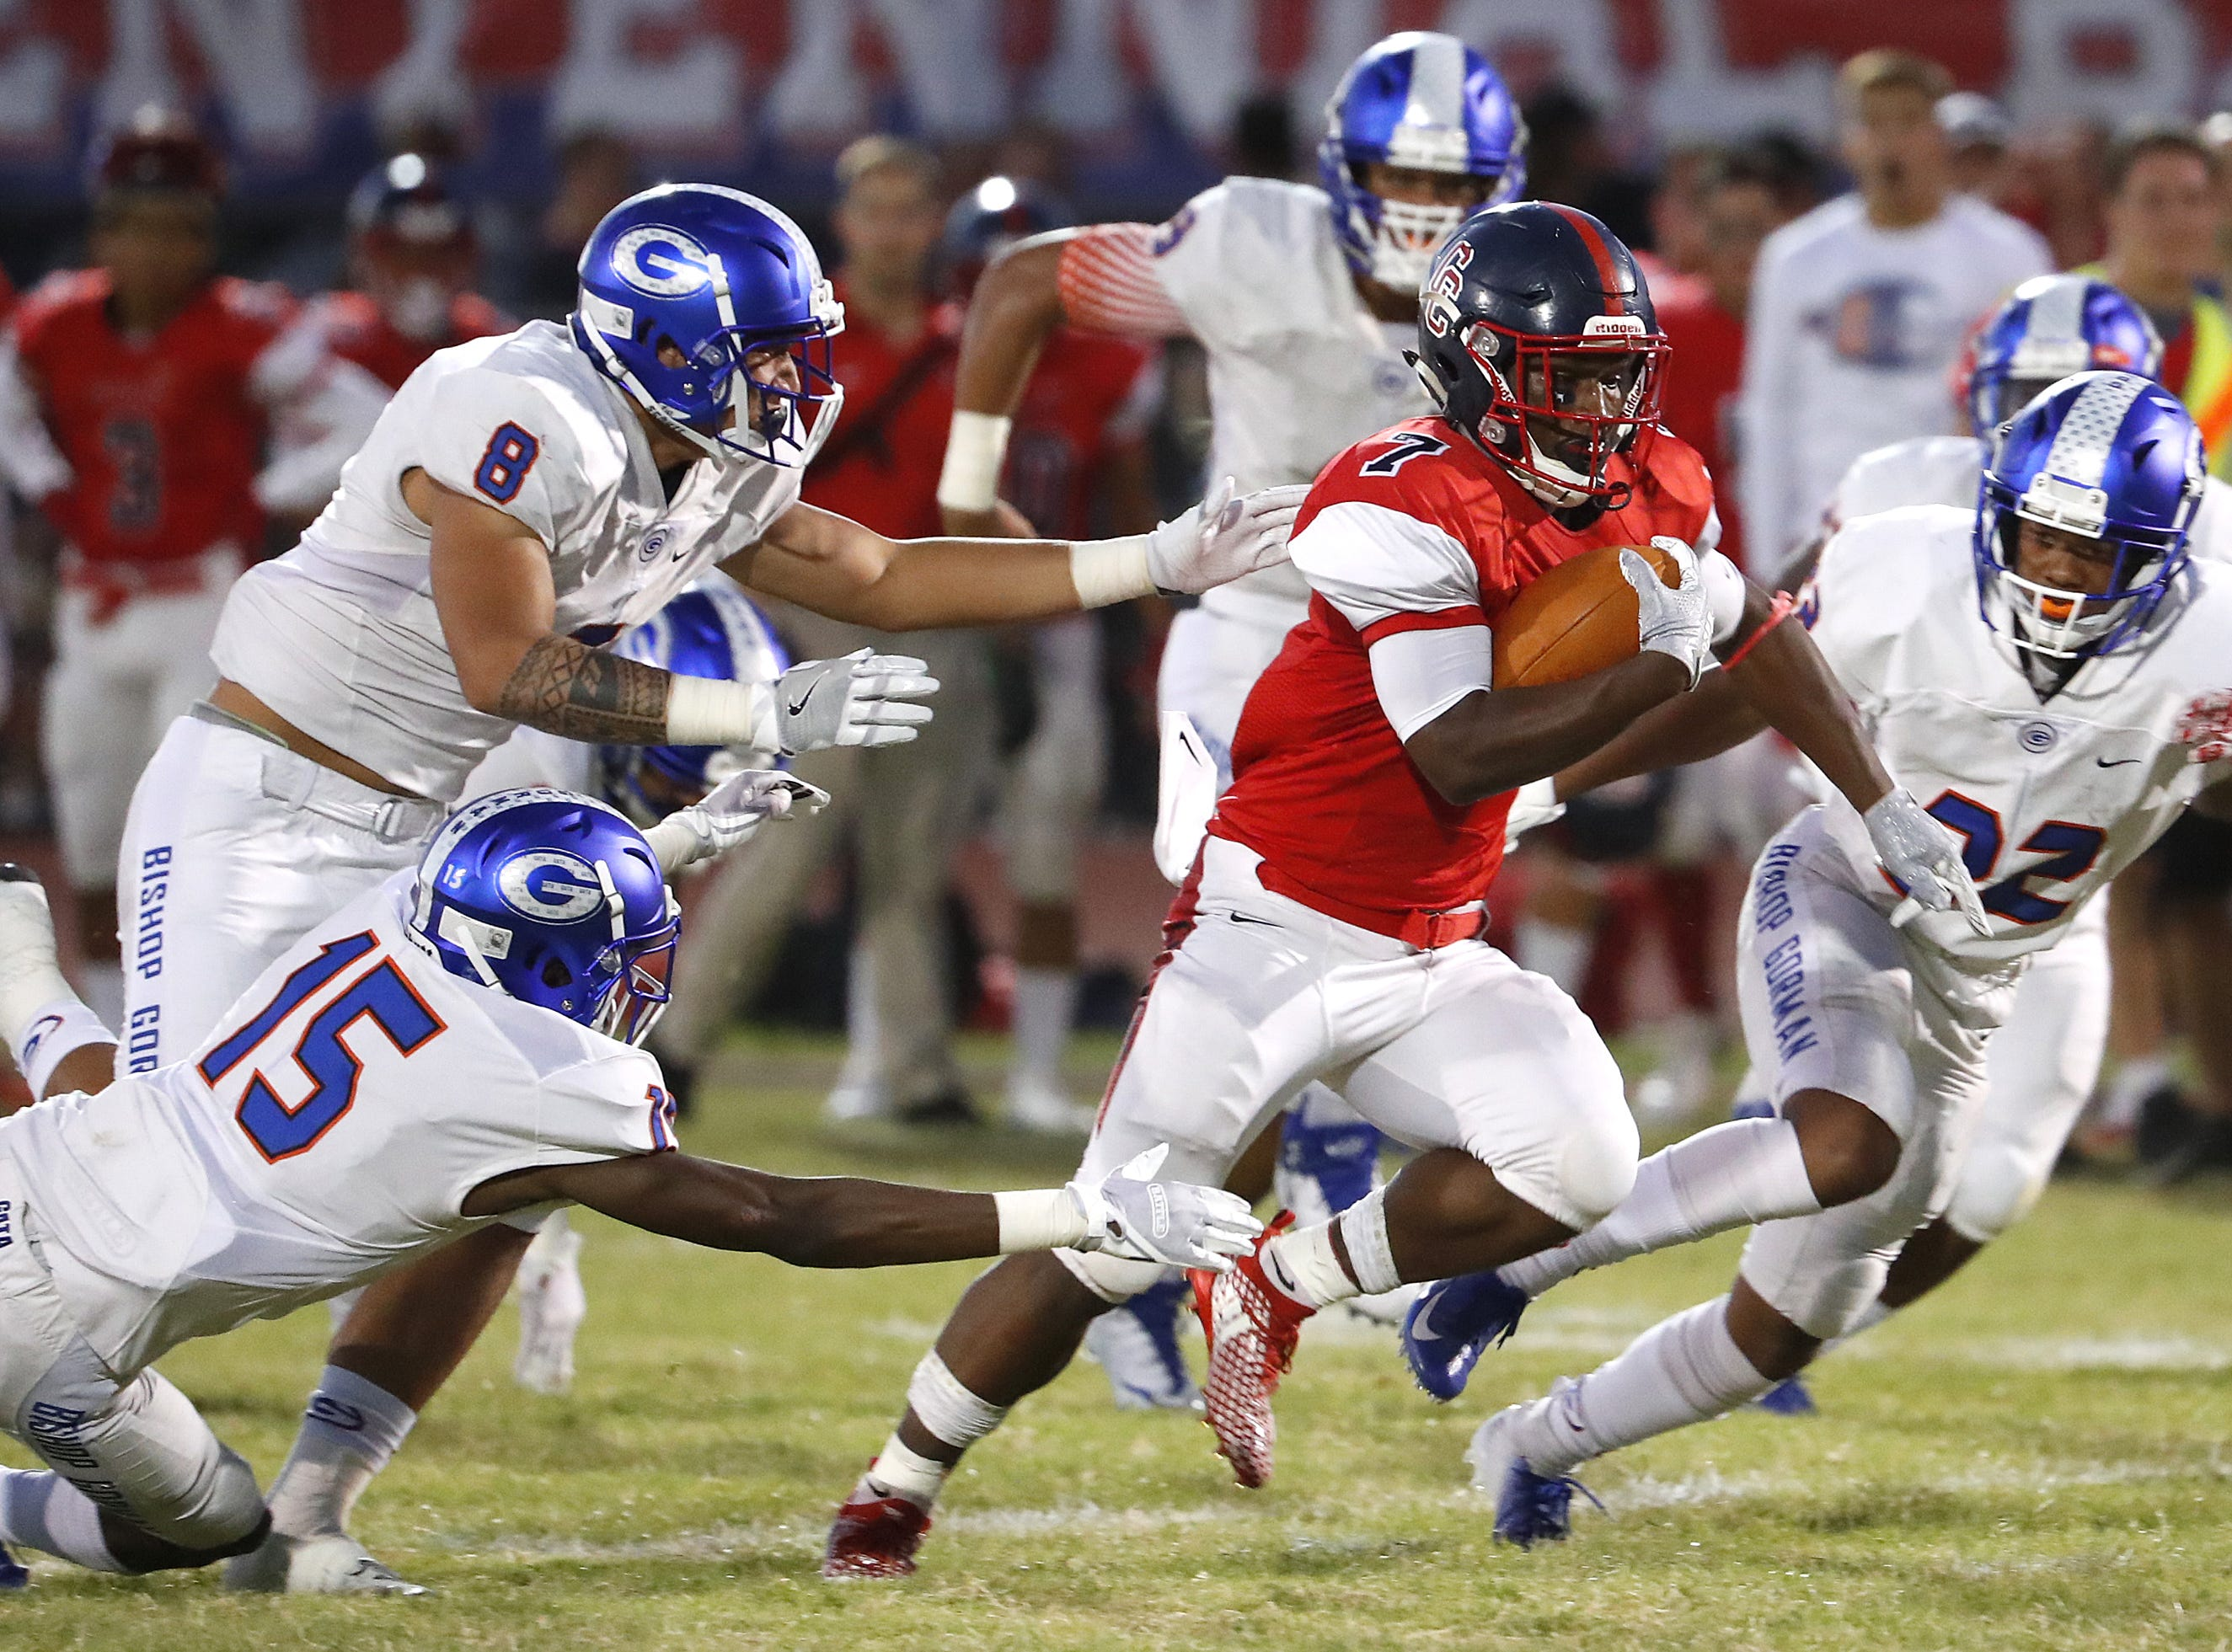 Bishop Gorman's Treven Ma'ae (8) tackles Centennial's Tawee Walker (7) during a game at Centennial High School in  Peoria, Ariz. on Aug. 31, 2018.